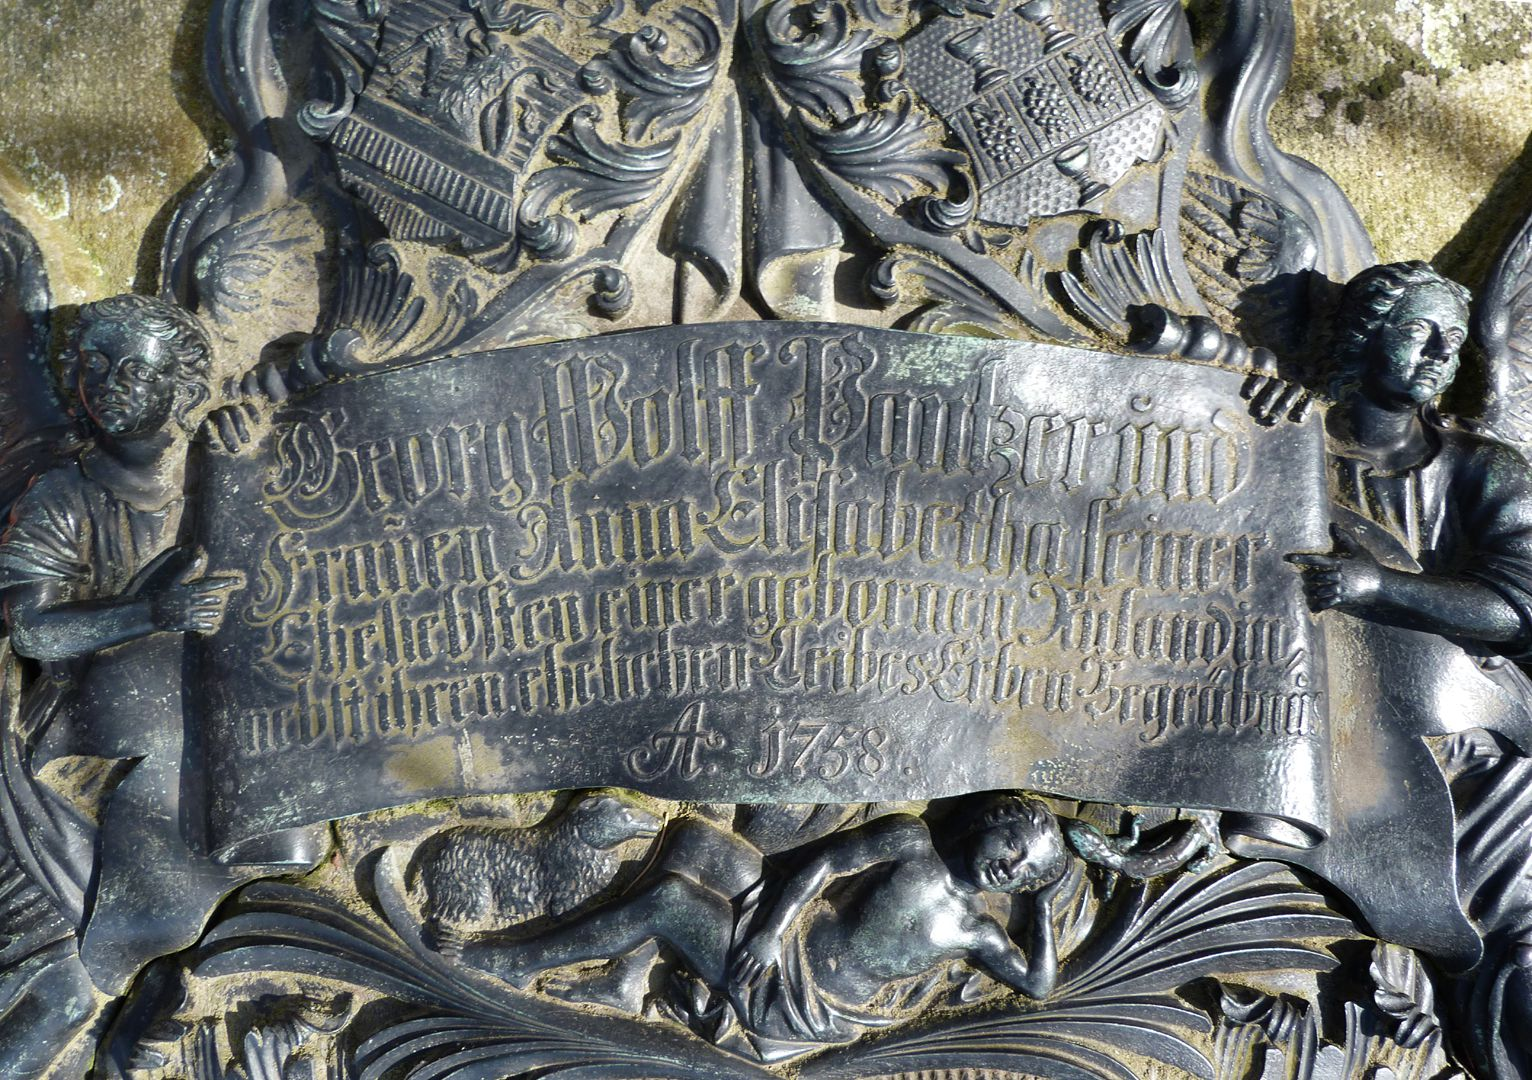 Tomb of Georg Wolff Pantzer and his spouse Anna Maria Elisabetha Ruland Upper inscription